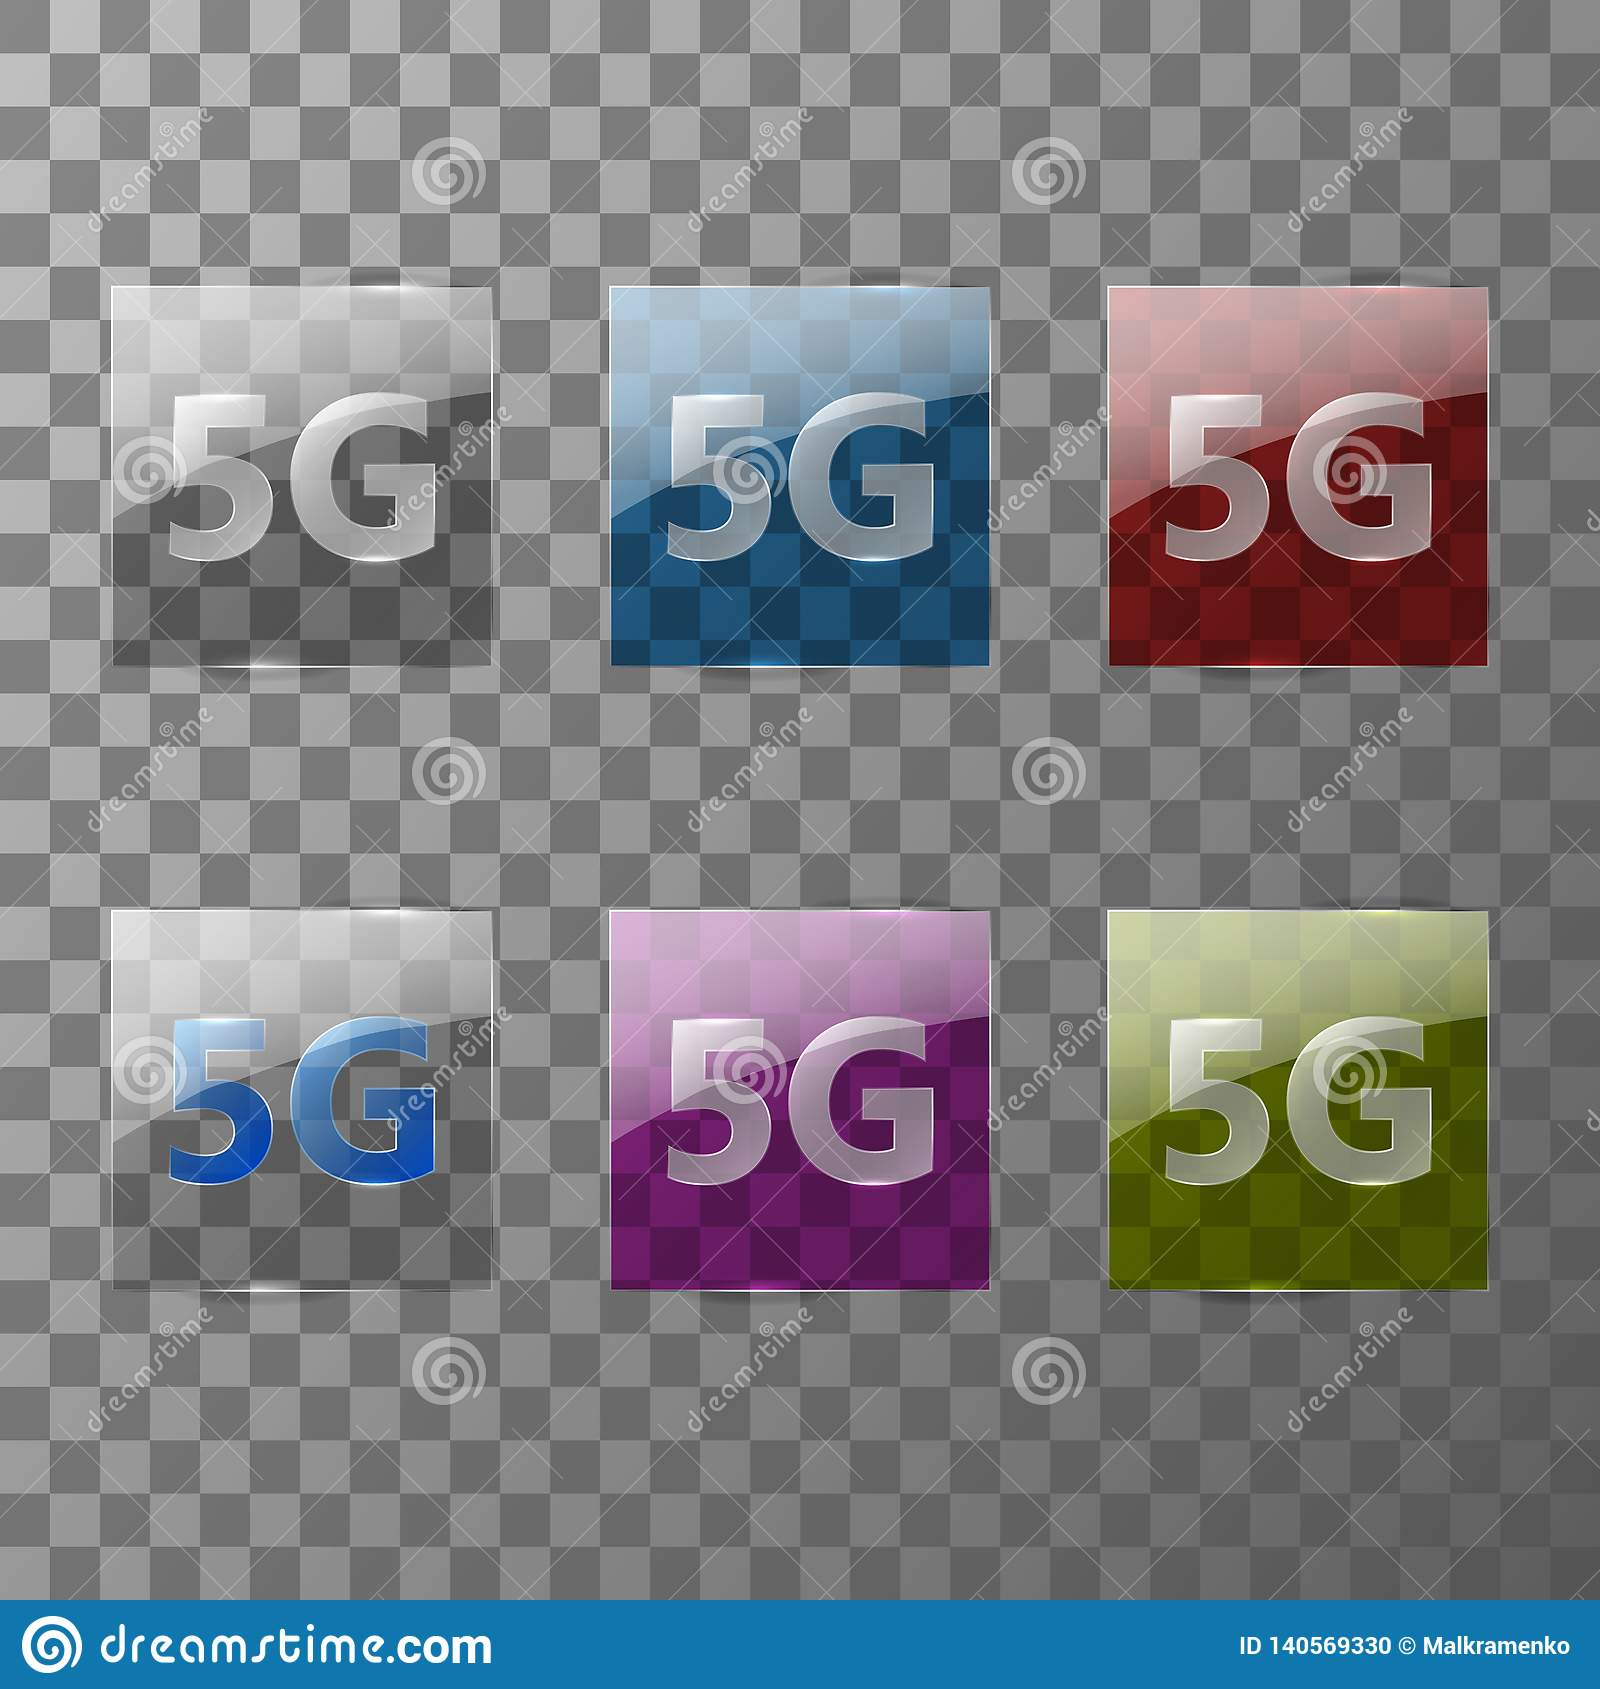 Modern 5G signal transmission technology is depicted on multi-colored transparent glass plates.